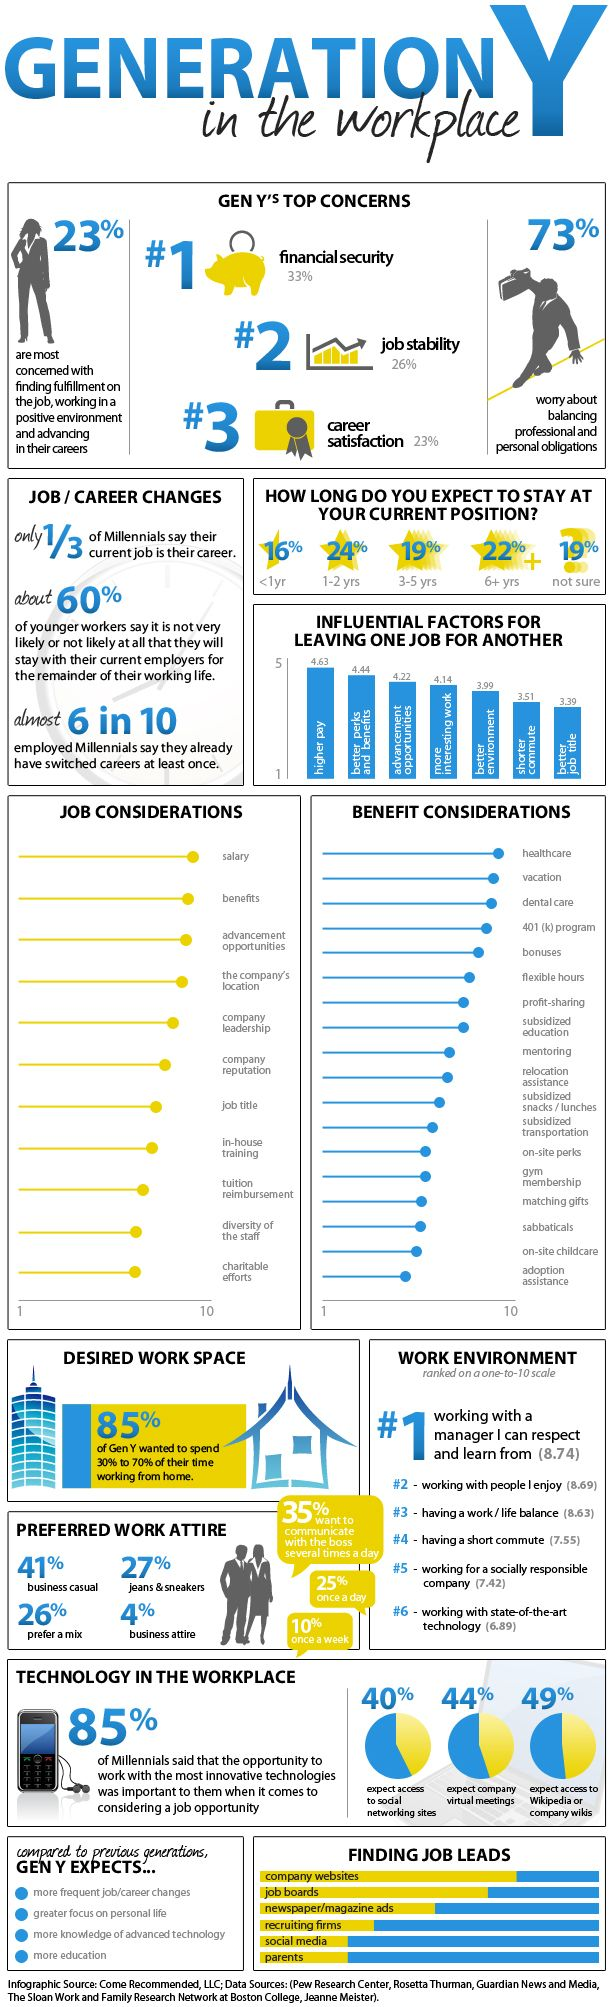 17 best images about generation y future of work infographics on us millennials gen y in the workplace workplace generational differences